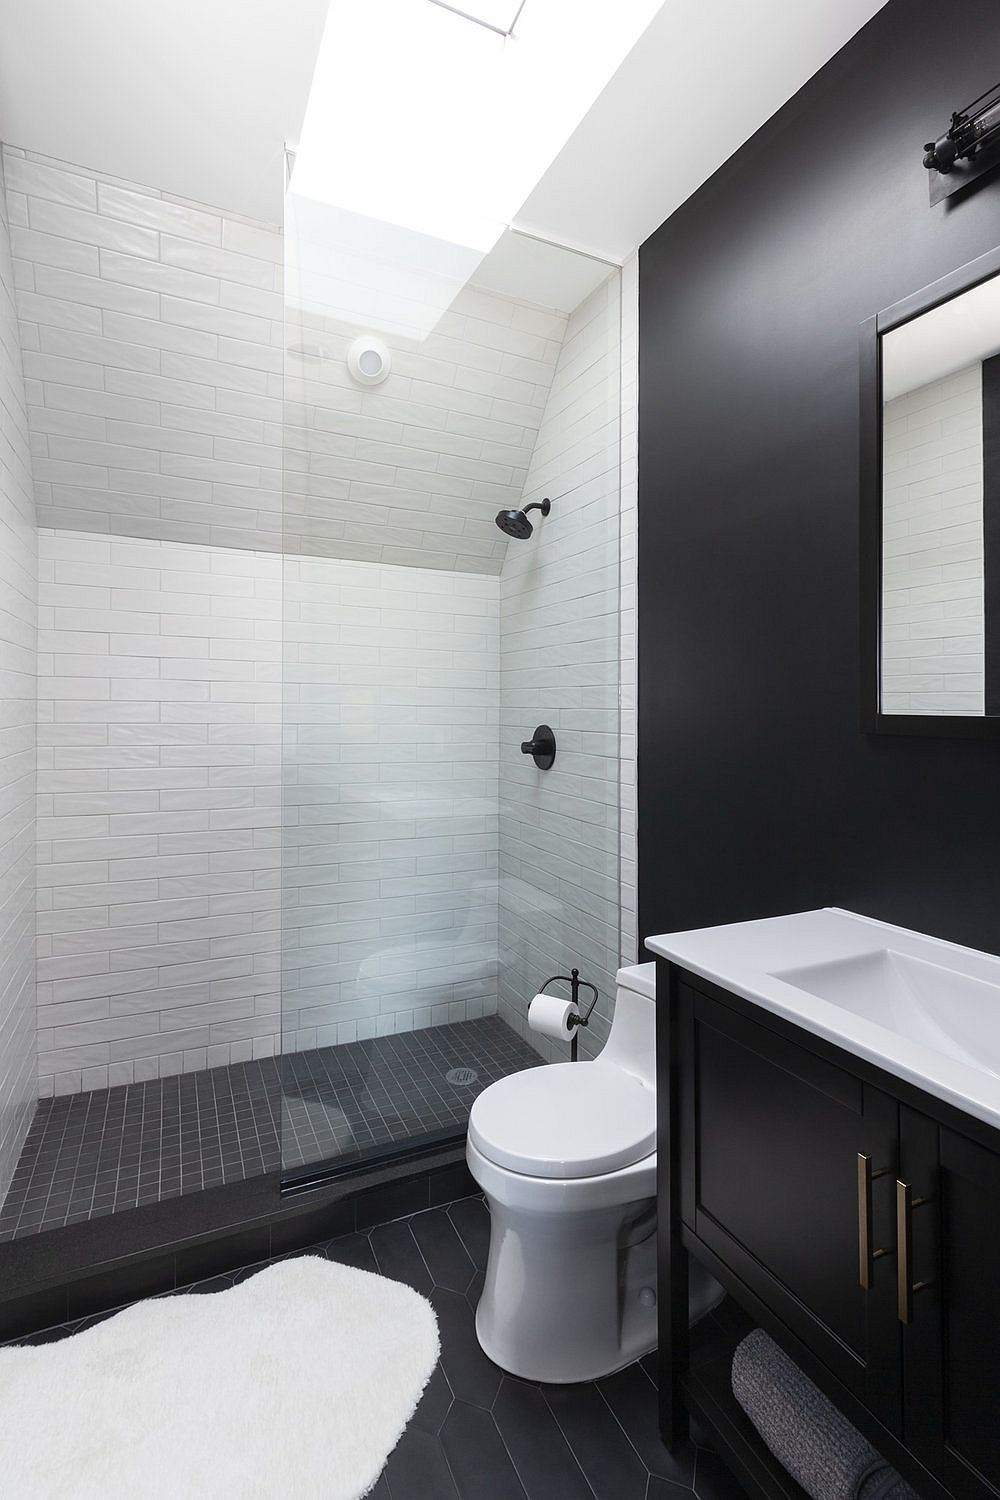 White-shower-area-with-a-skylight-gives-the-bathroom-a-brighter-more-spacious-appeal-35087